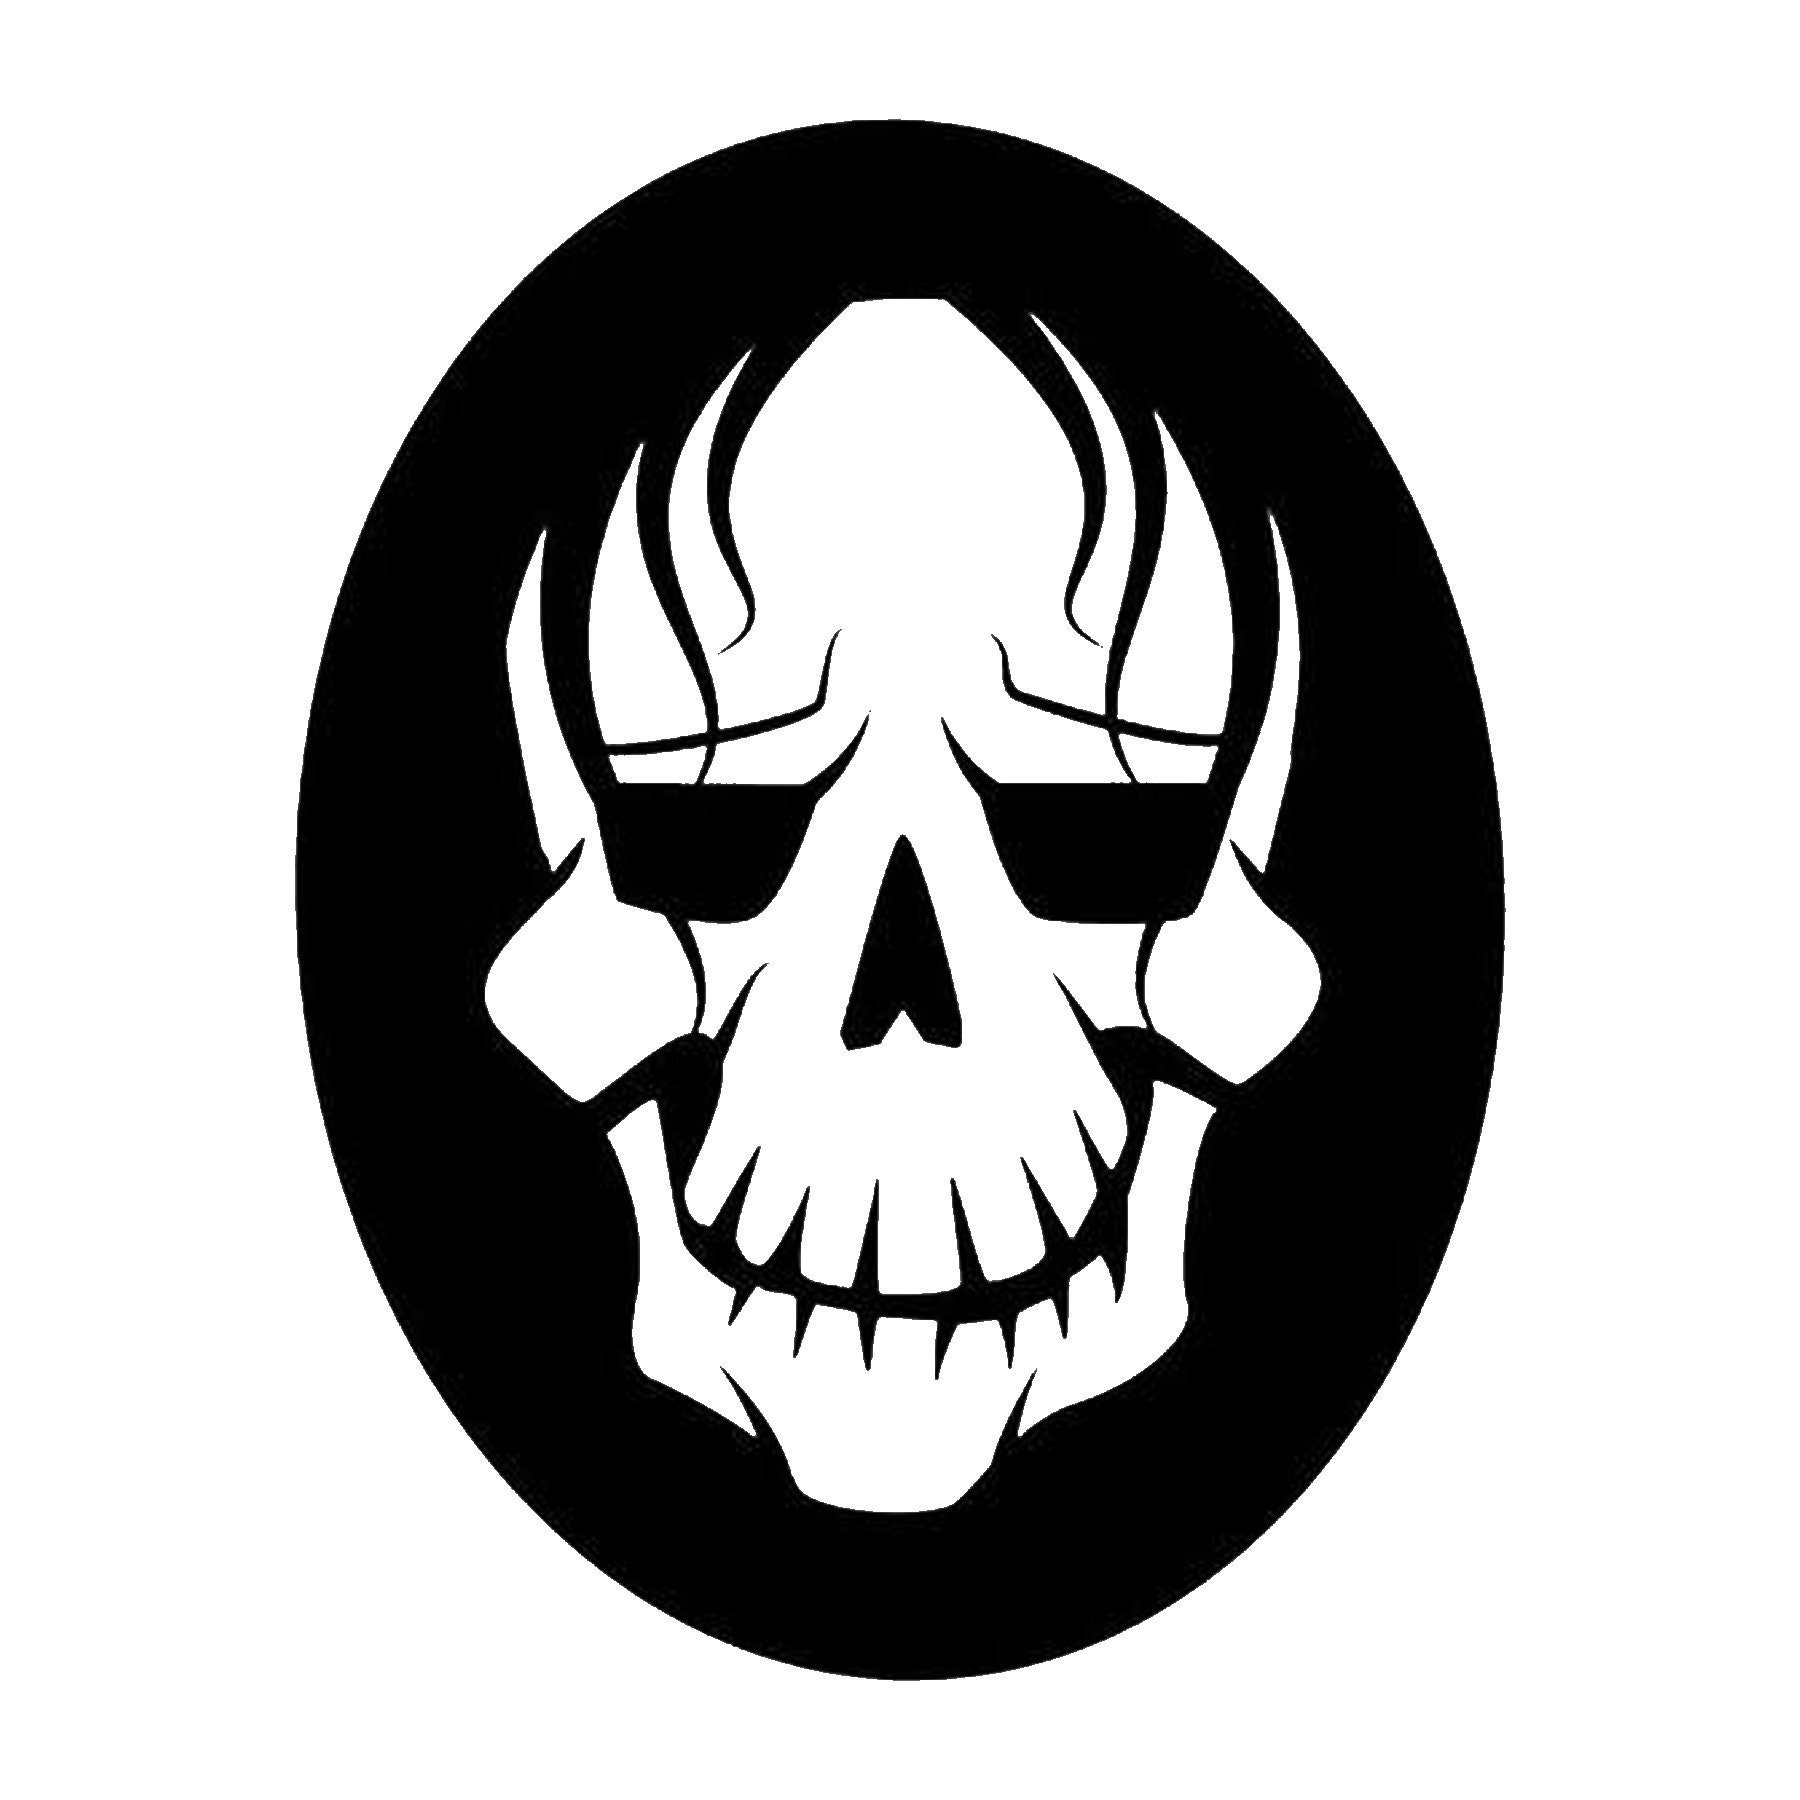 CAD$6.99 - Skull Vinyl Decal - various sizes and colors - colours